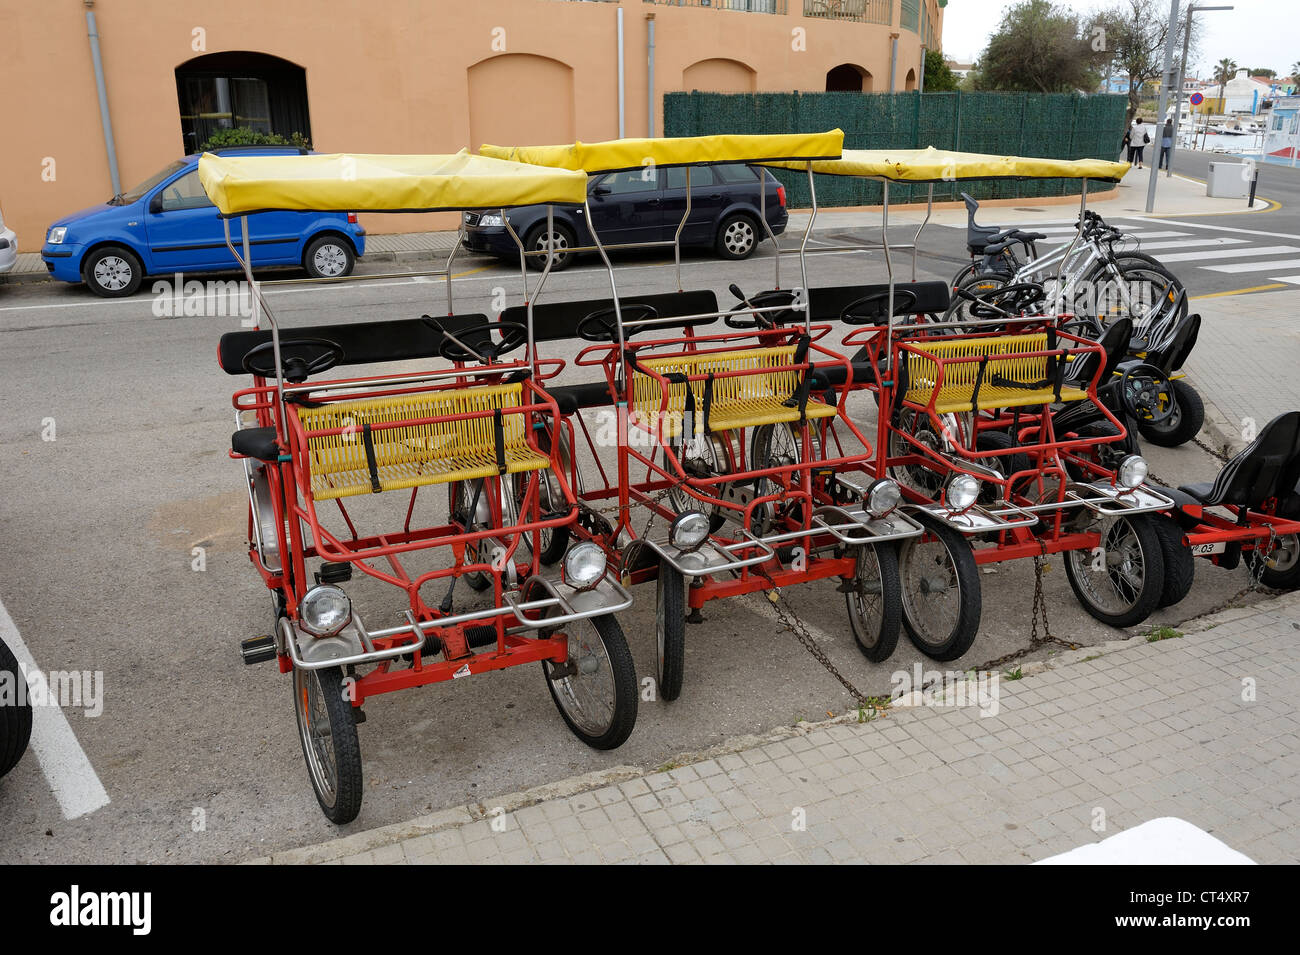 Pedal Car Bicycles For Hire Menorca Spain Stock Photo 49281323 Alamy